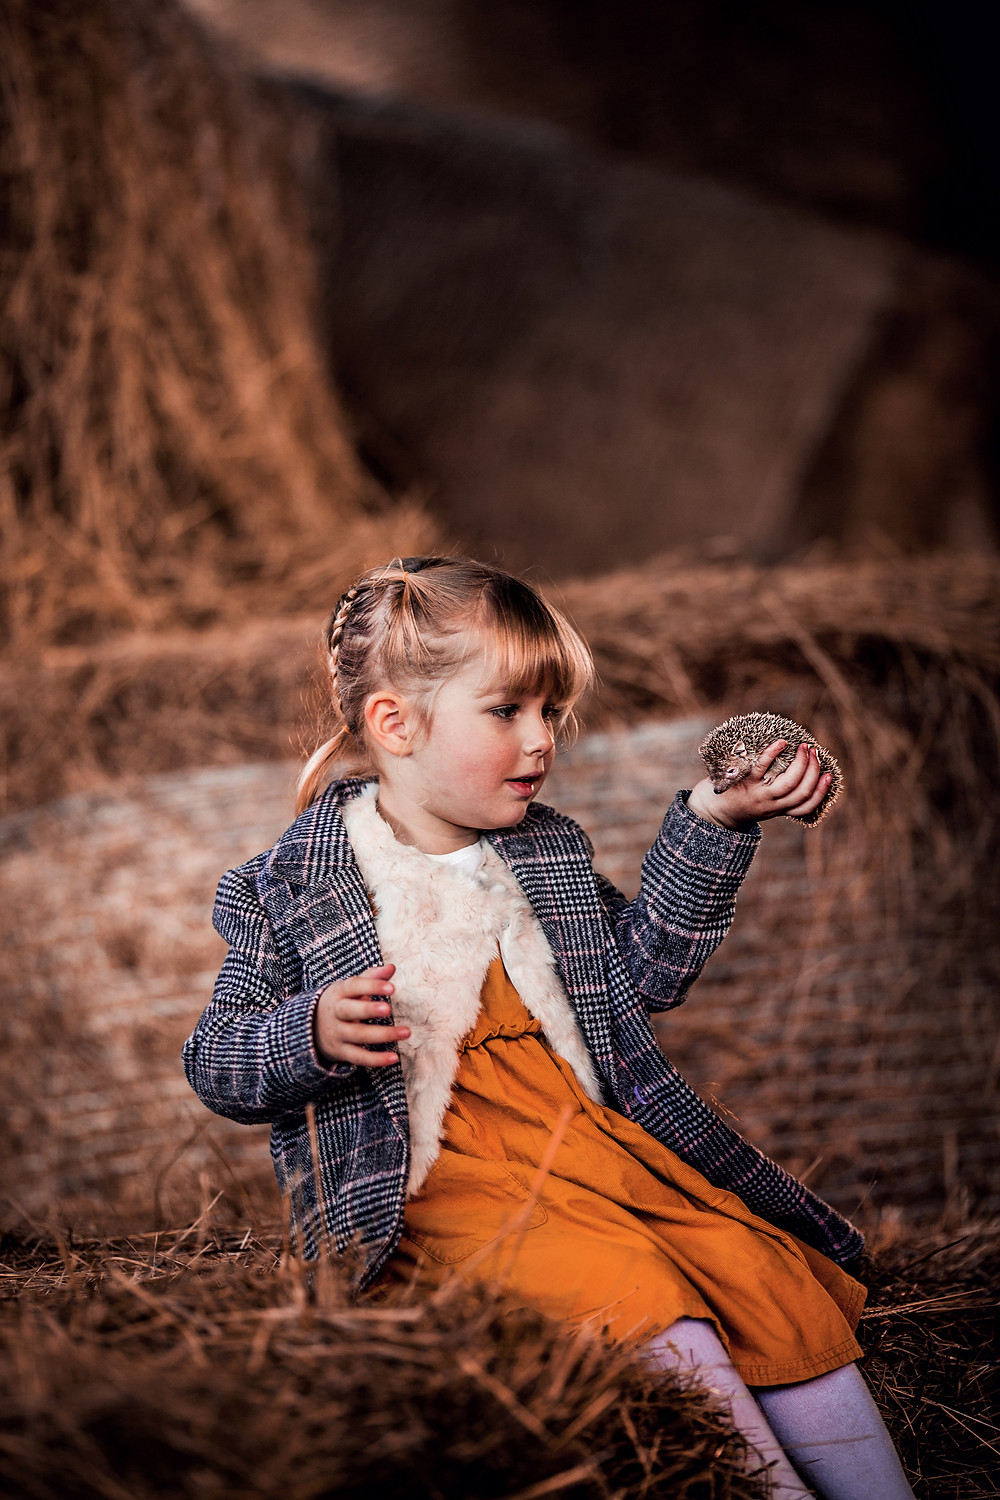 sugar moon magical portrait photography child family animal tenrec hedgehog barn